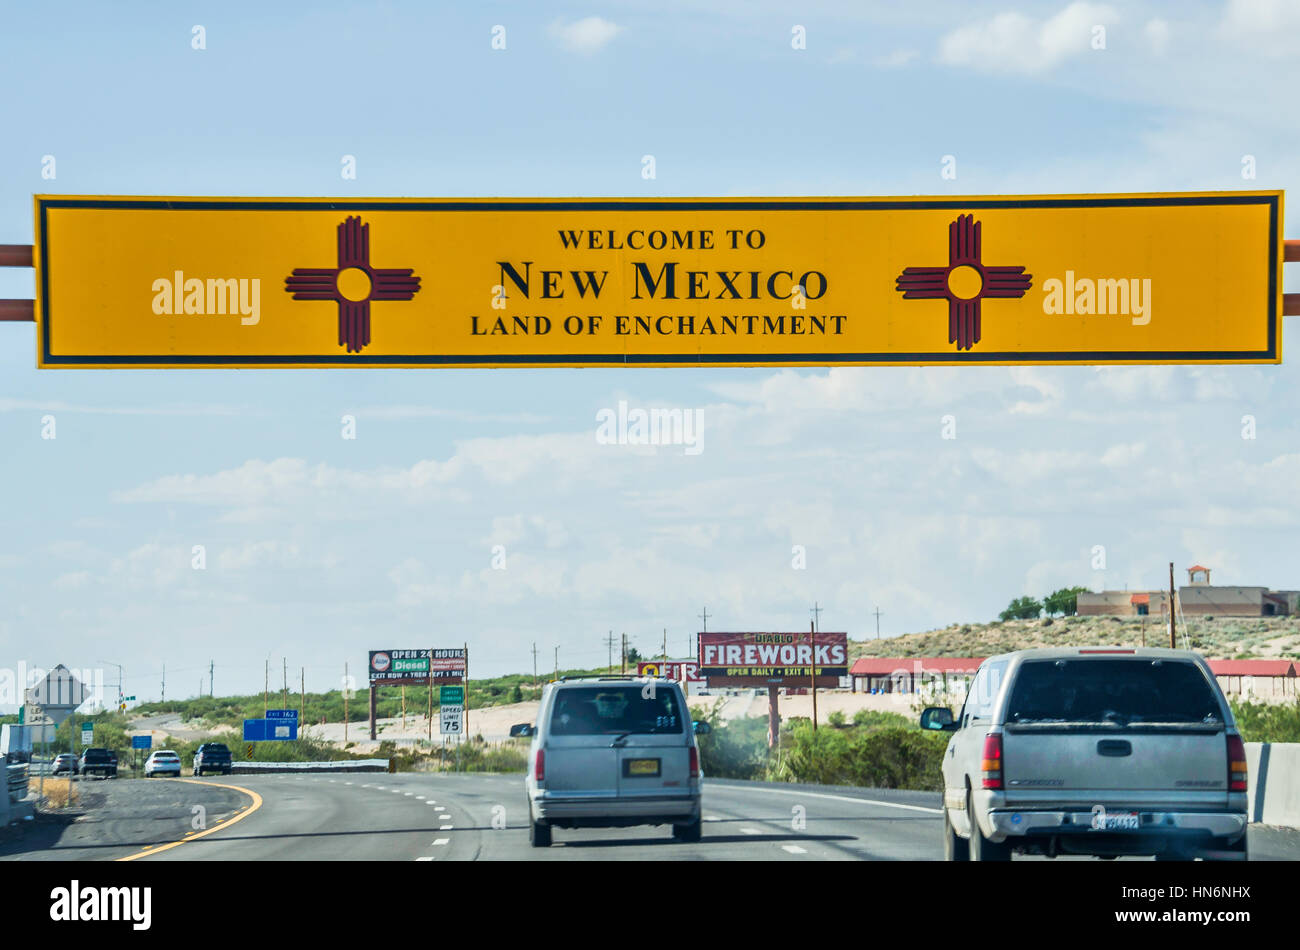 El Paso, USA - July 26, 2015: Welcome to New Mexico sign with land of enchantment words on highway at Texas border Stock Photo